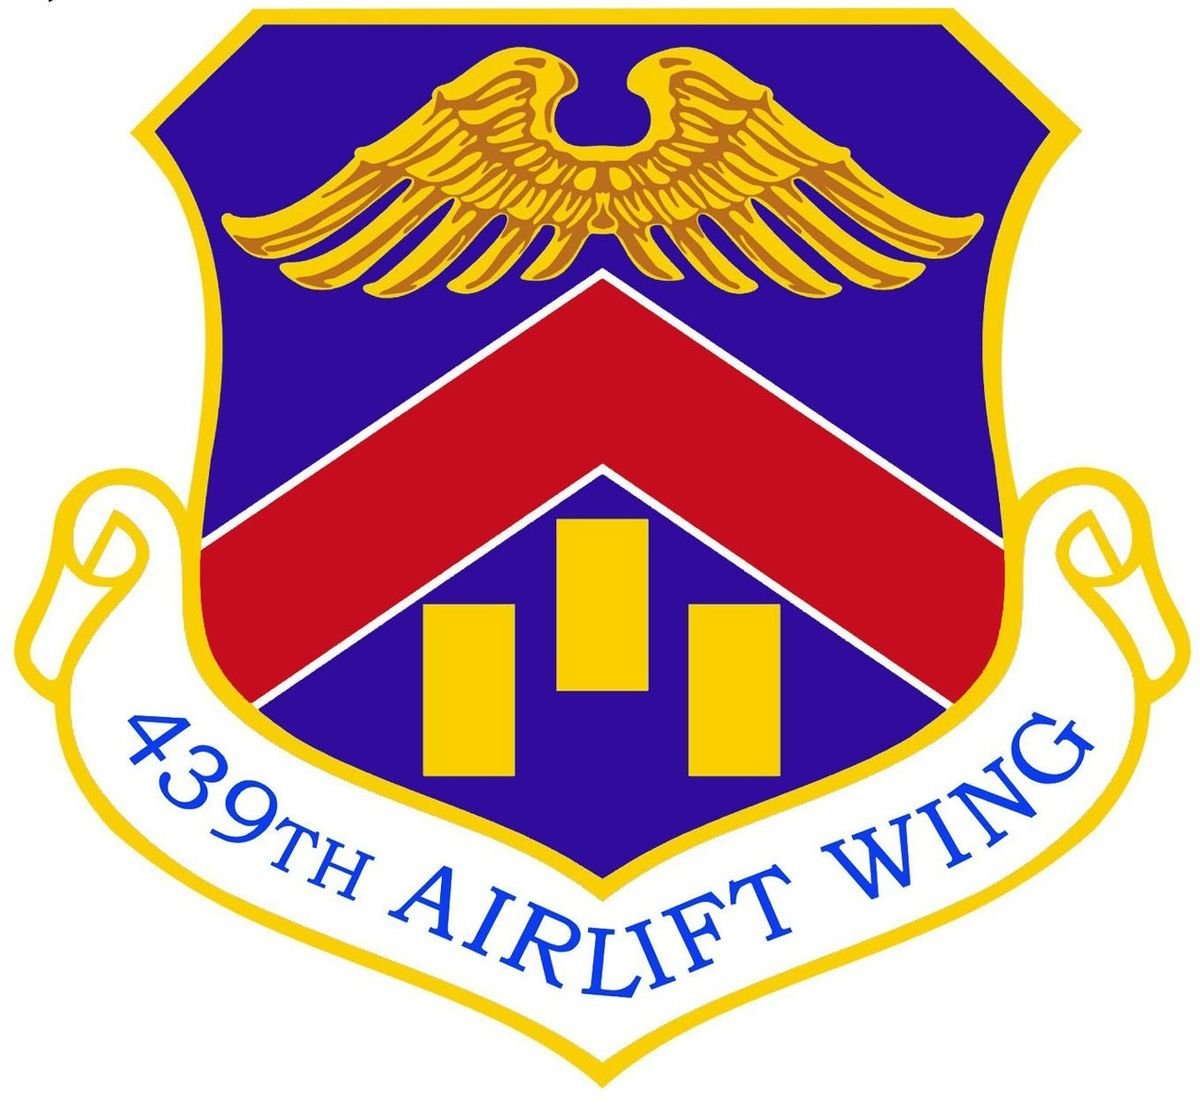 439th Airlift Wing Wikipedia